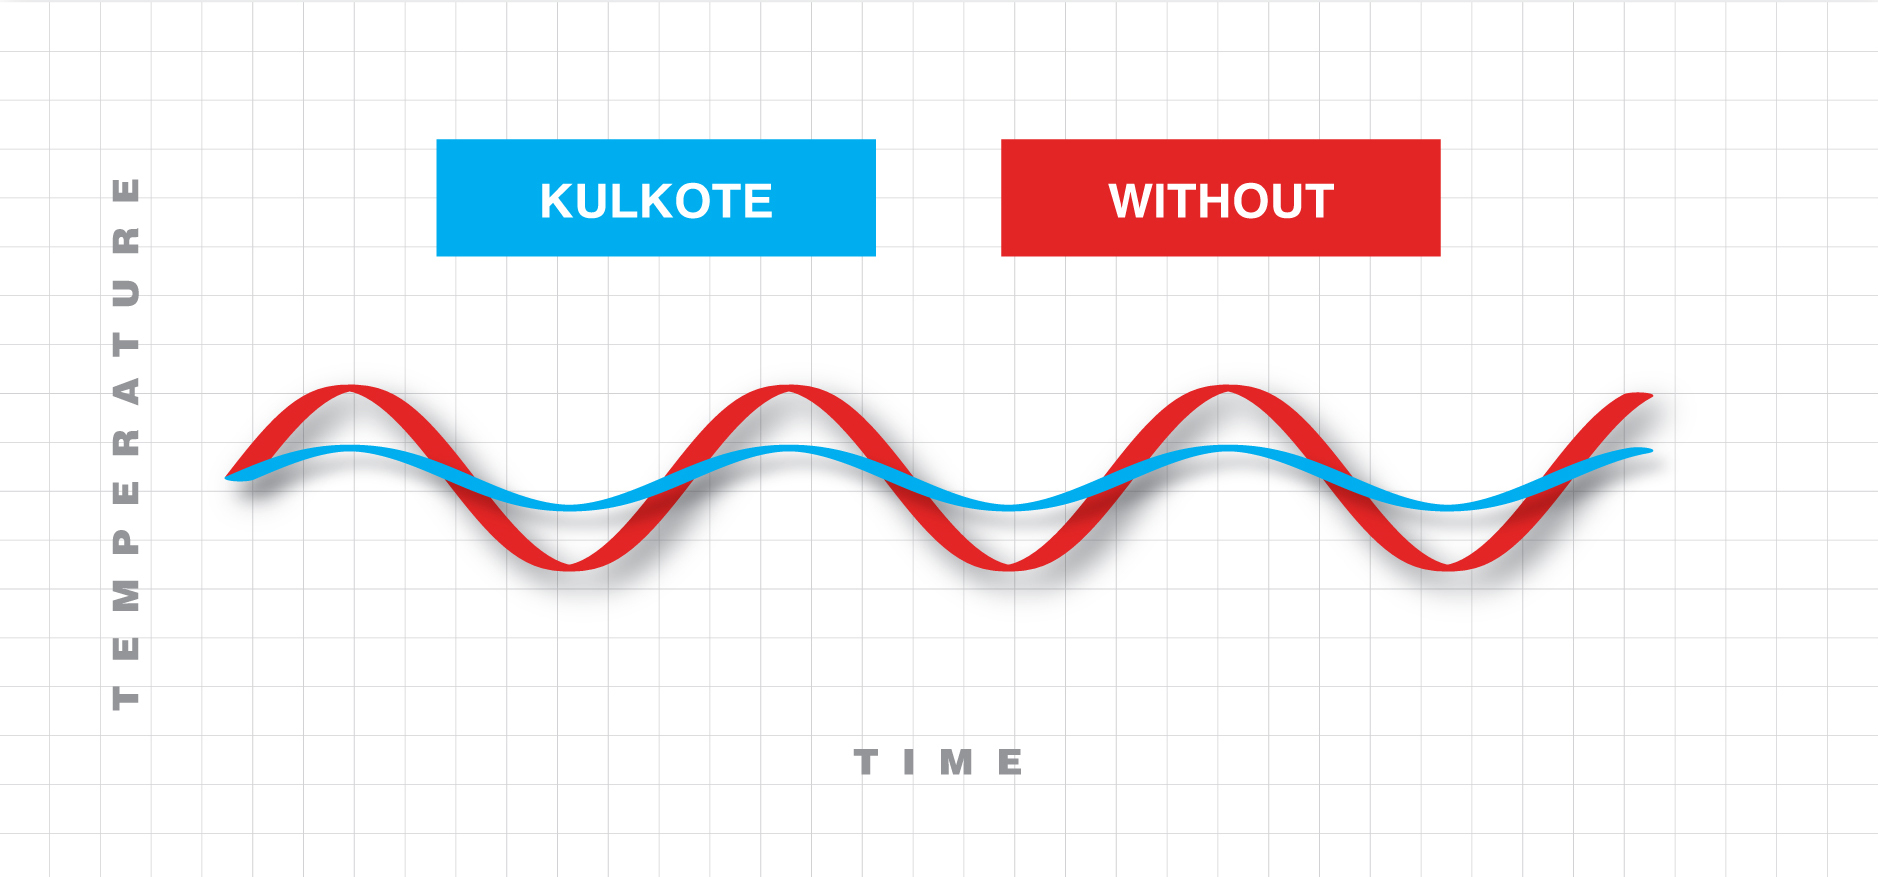 KulKote temperature difference